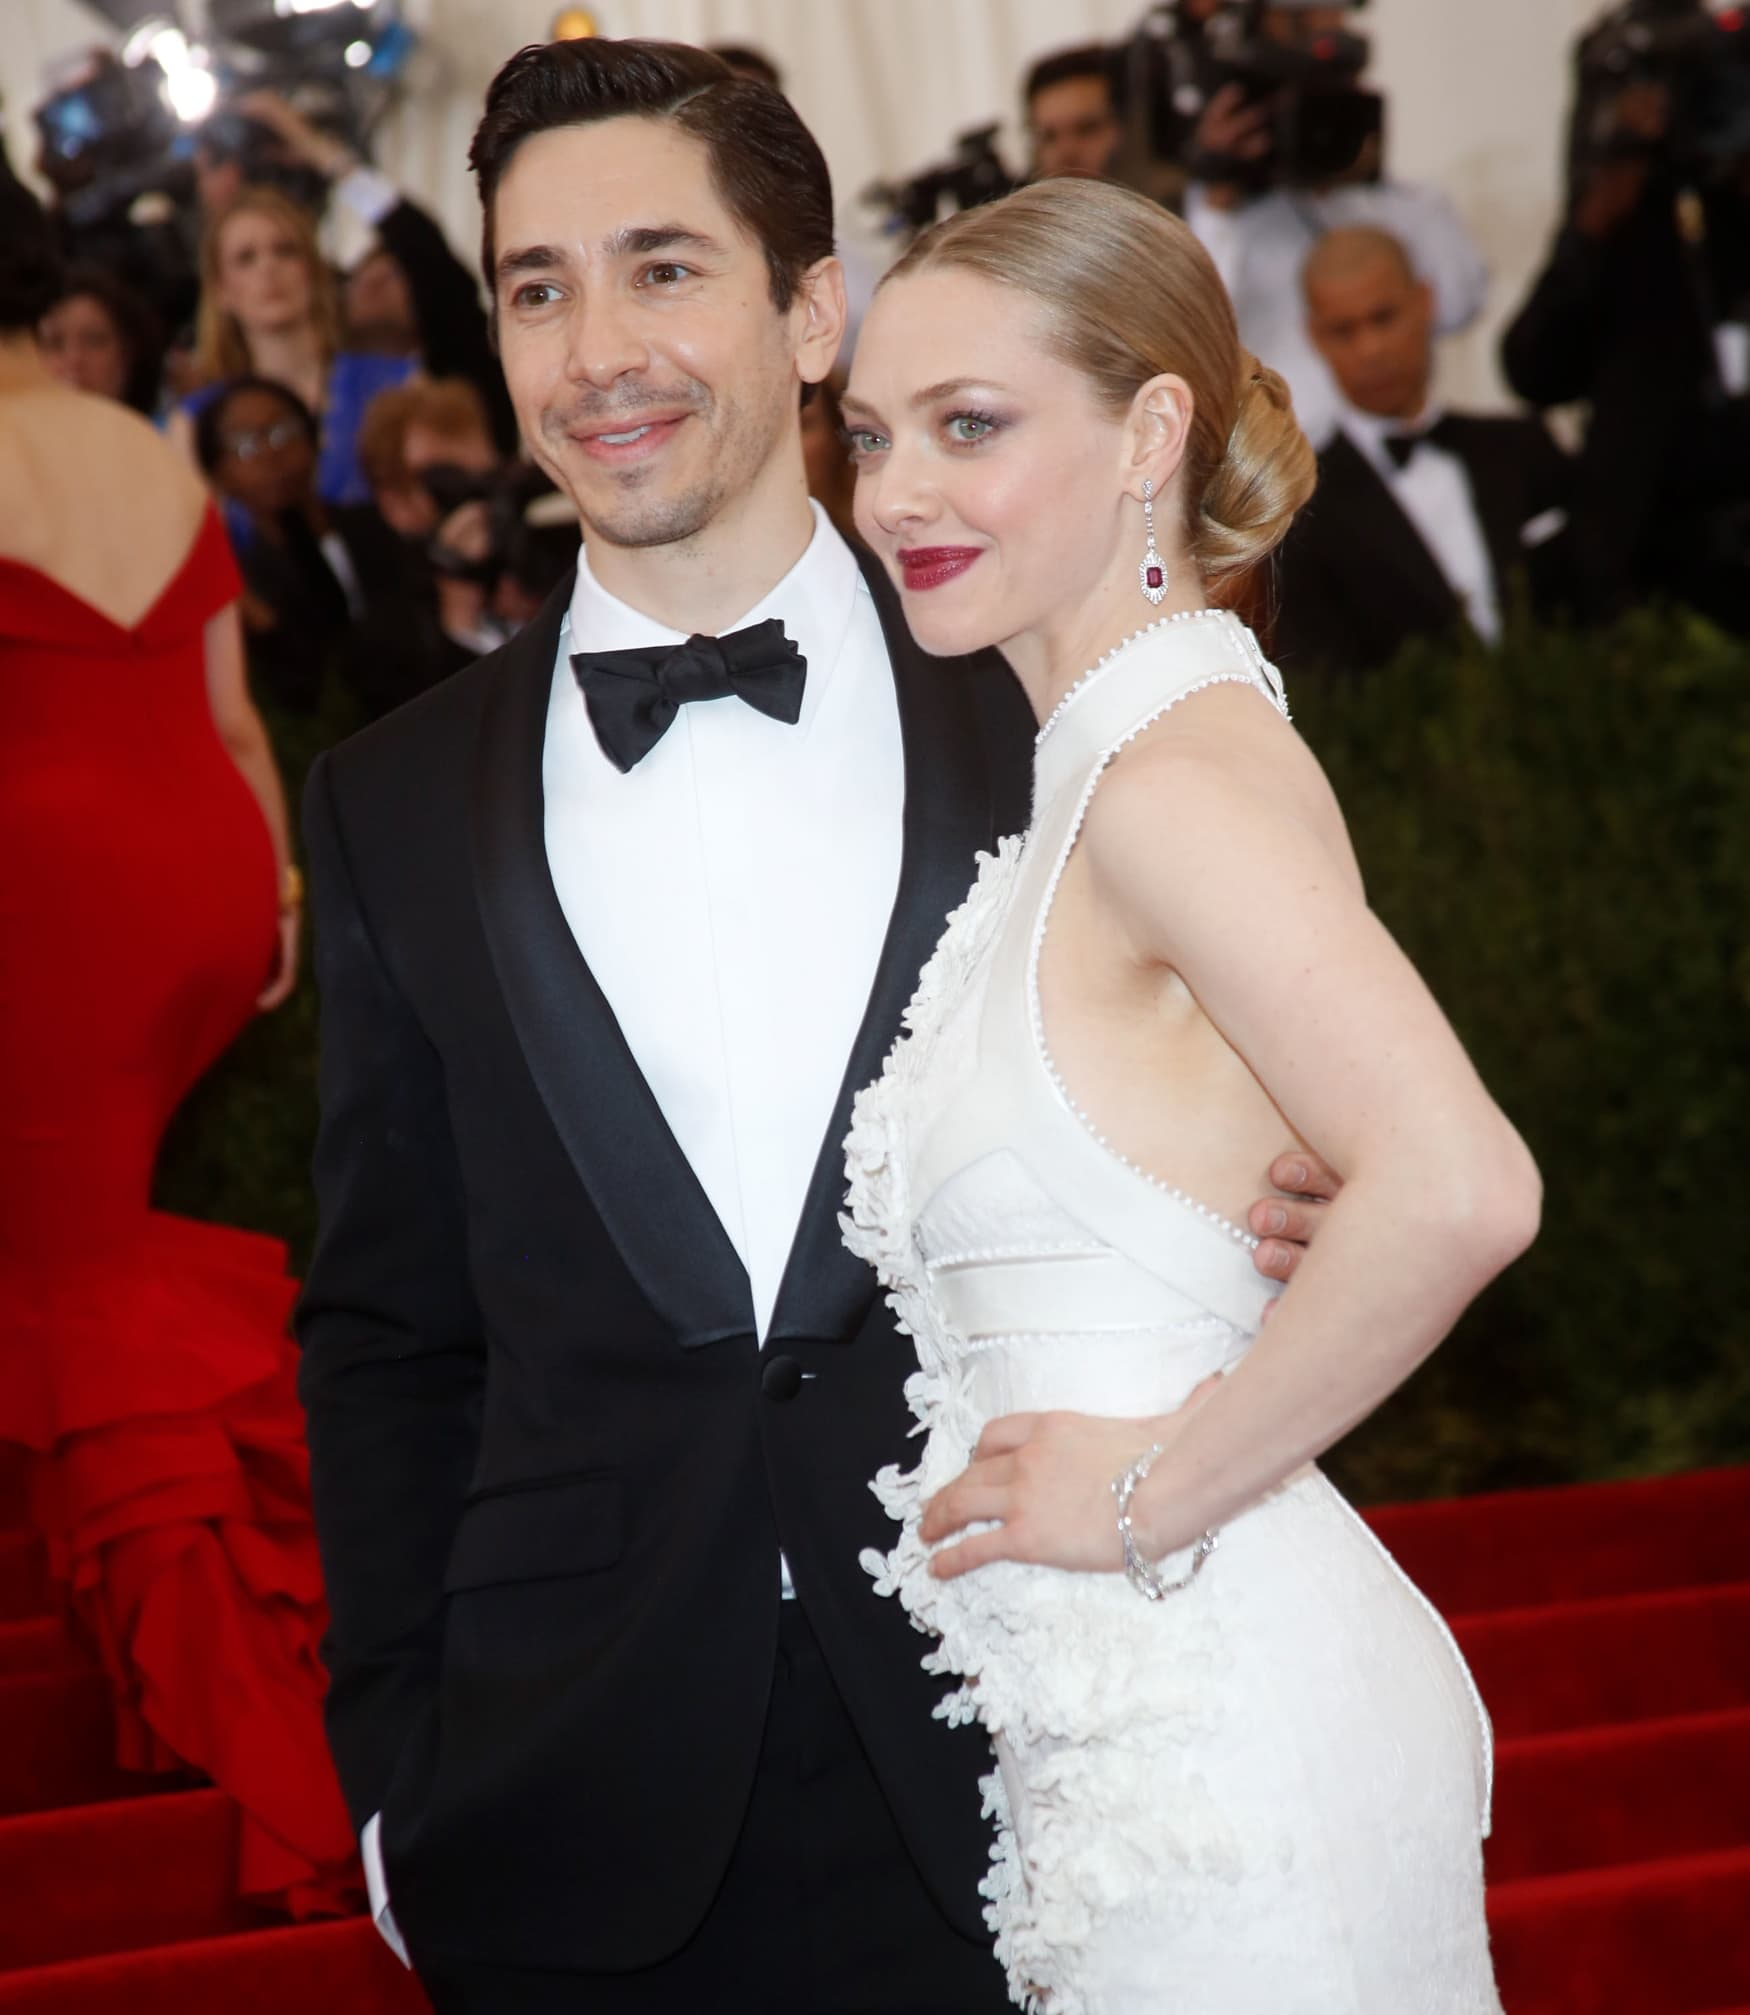 The nude images allegedly show Amanda Seyfried enjoying an intimate vacation with her then-boyfriend Justin Long